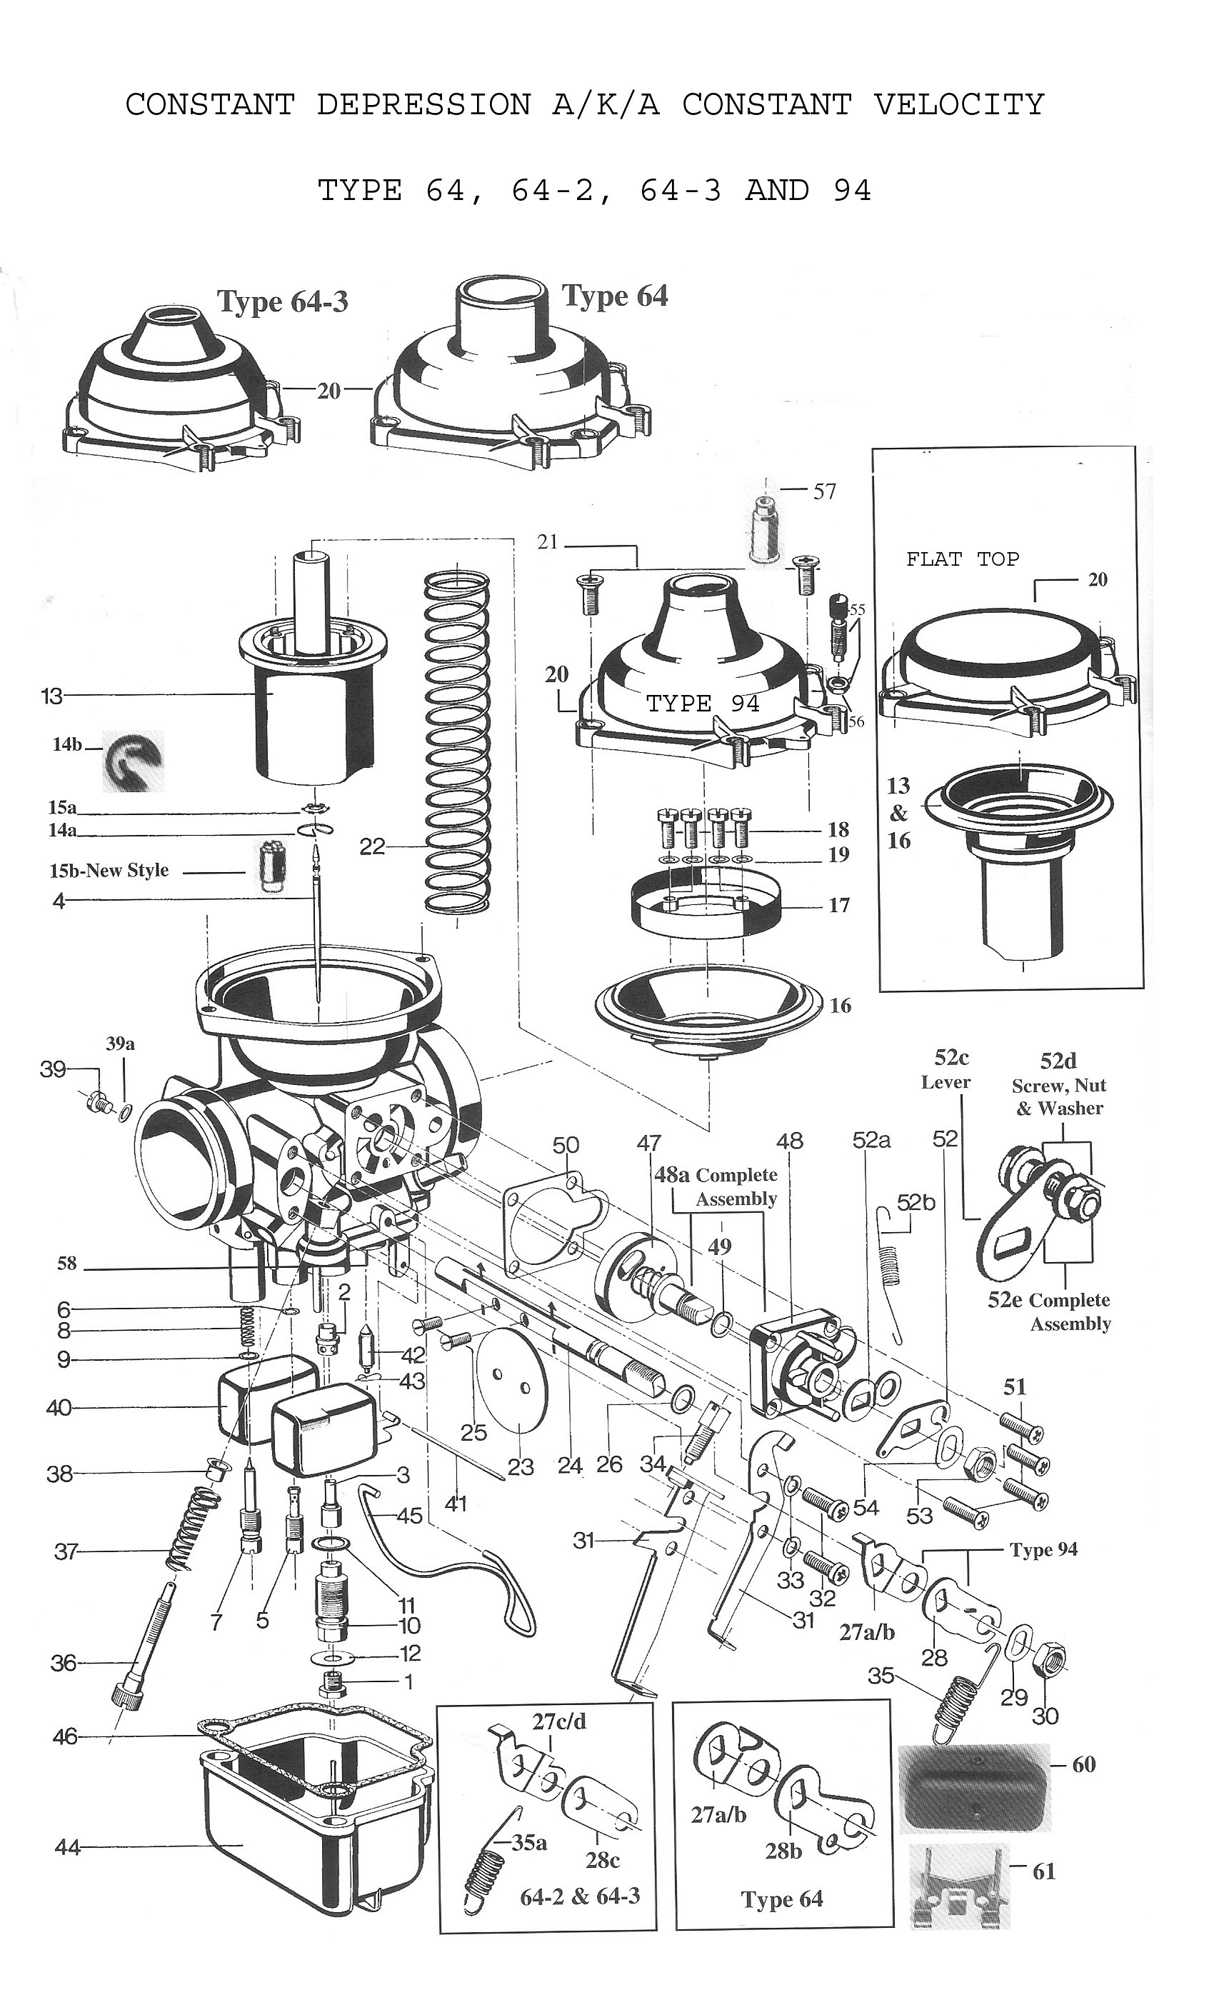 2000 Toyota Corolla Engine Diagram moreover 59ea1 Ford Fiesta Ford Fiesta Mk4 1999 1 25 Zetec 85k Miles Bucking together with TM2p 17952 besides 79 also 2000 Ford Focus Parts Diagram. on bmw engine parts diagram